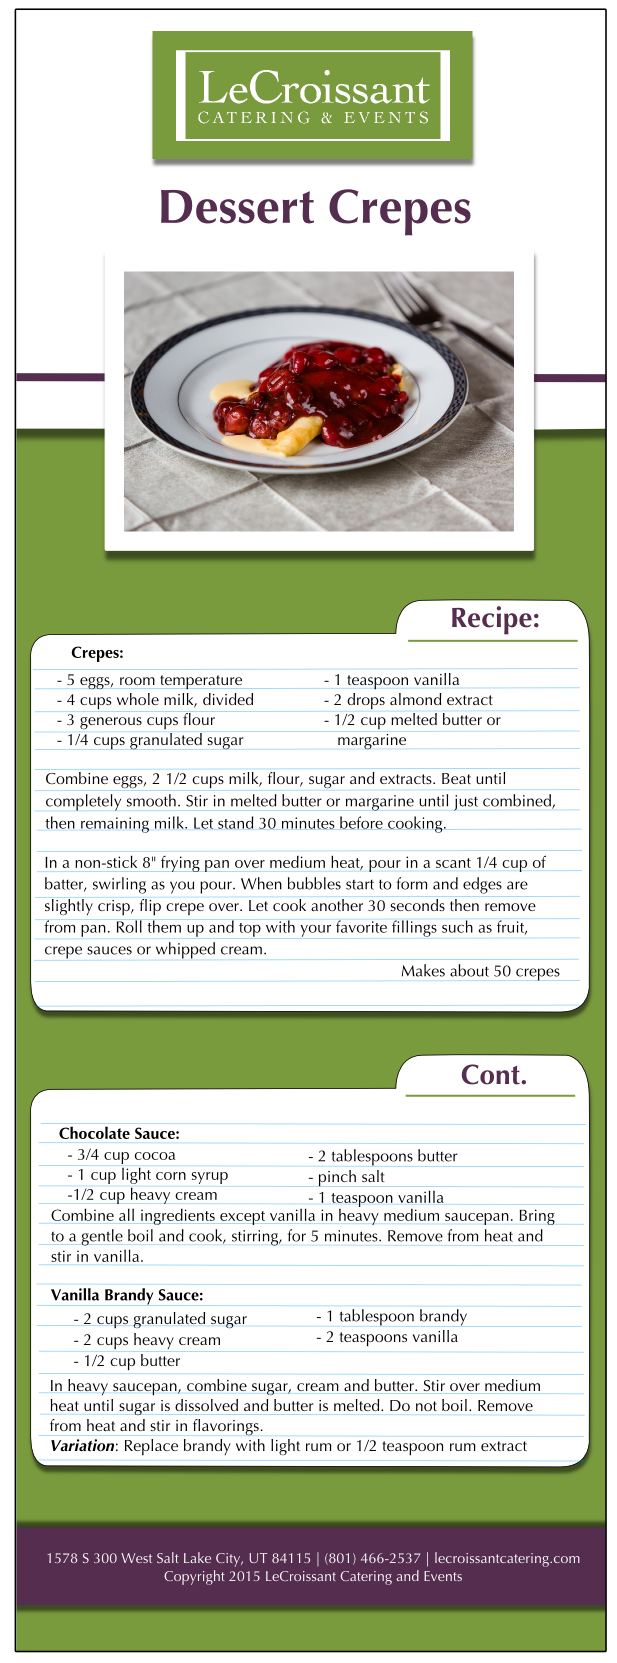 Dessert Crepe recipe for National Crepe Day. From LeCroissant Catering & Events - Utah's premier caterer National Crepe Day with LeCroissant Catering & Events National Crepe Day with LeCroissant Catering & Events crepes